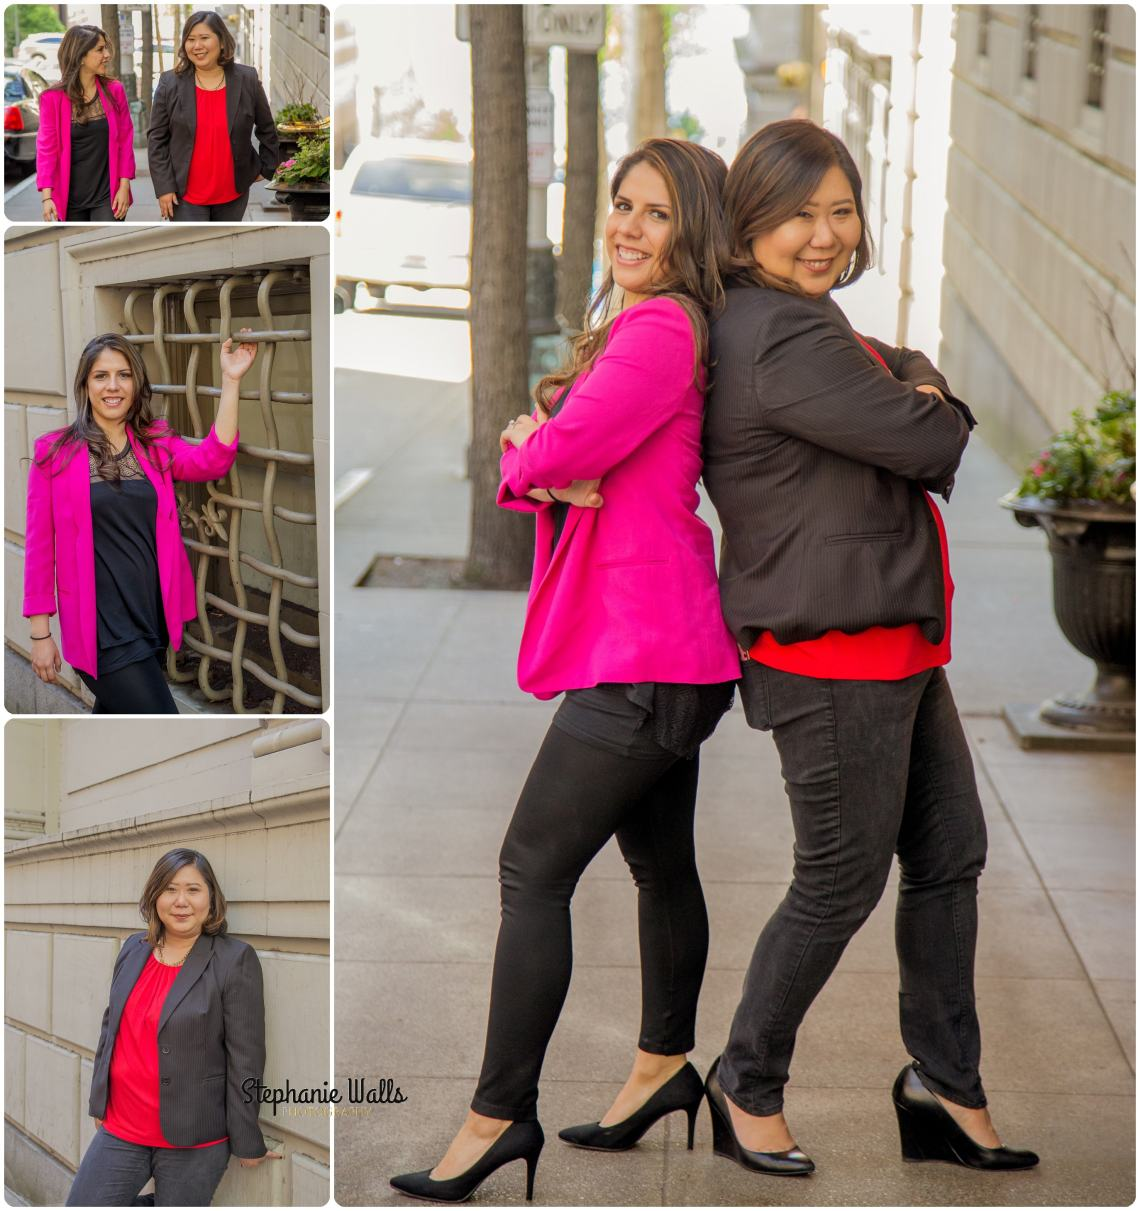 Webp.net compress image ONE STEP AT A TIME | DRESS FOR SUCCESS SEATTLE | STEPHANIE WALLS PHOTOGRAPHY